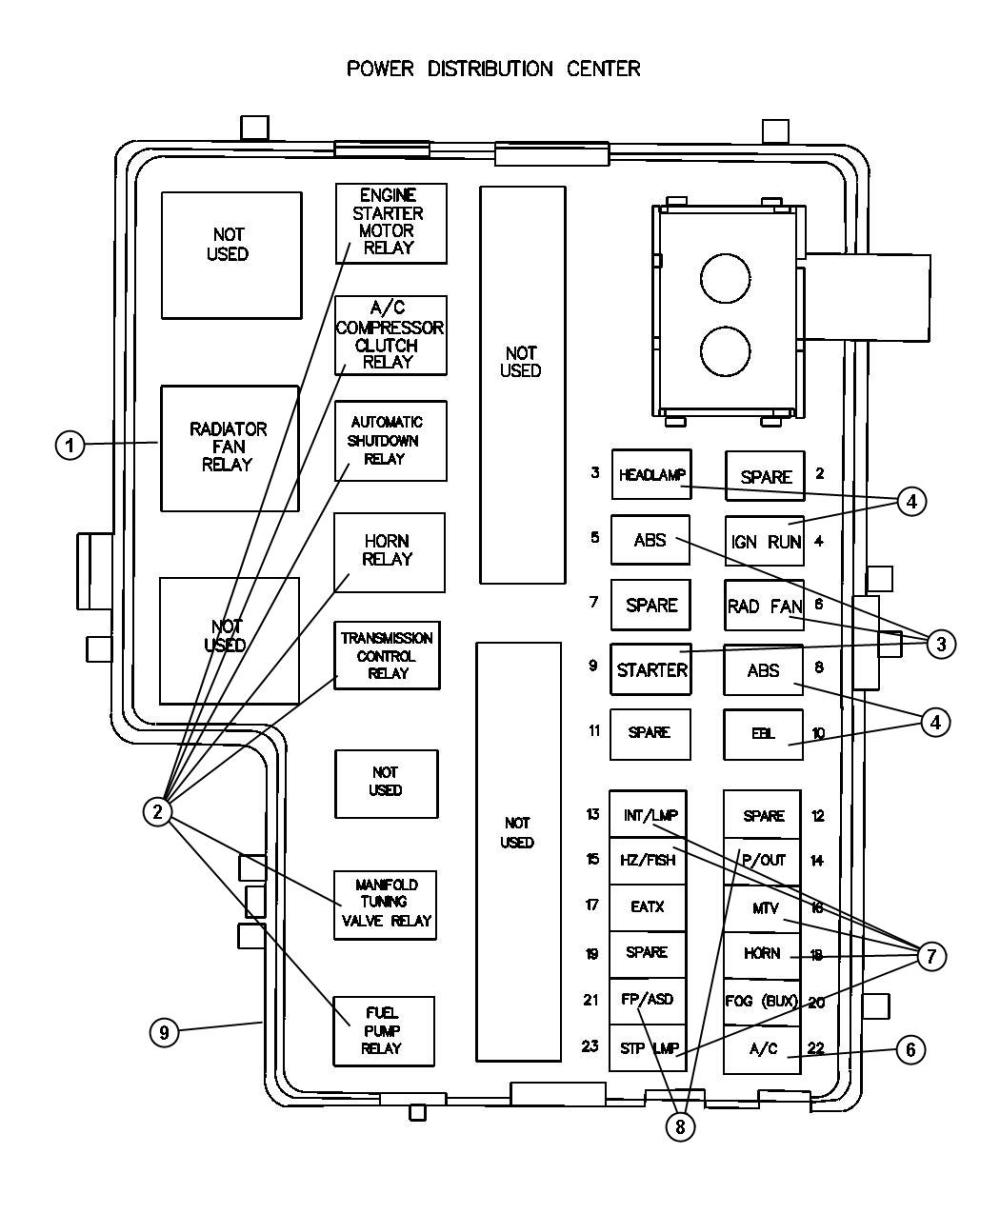 medium resolution of fuse box diagram for 2000 dodge neon wiring diagram portal 2002 dodge neon fuse box 2005 dodge neon fuse box